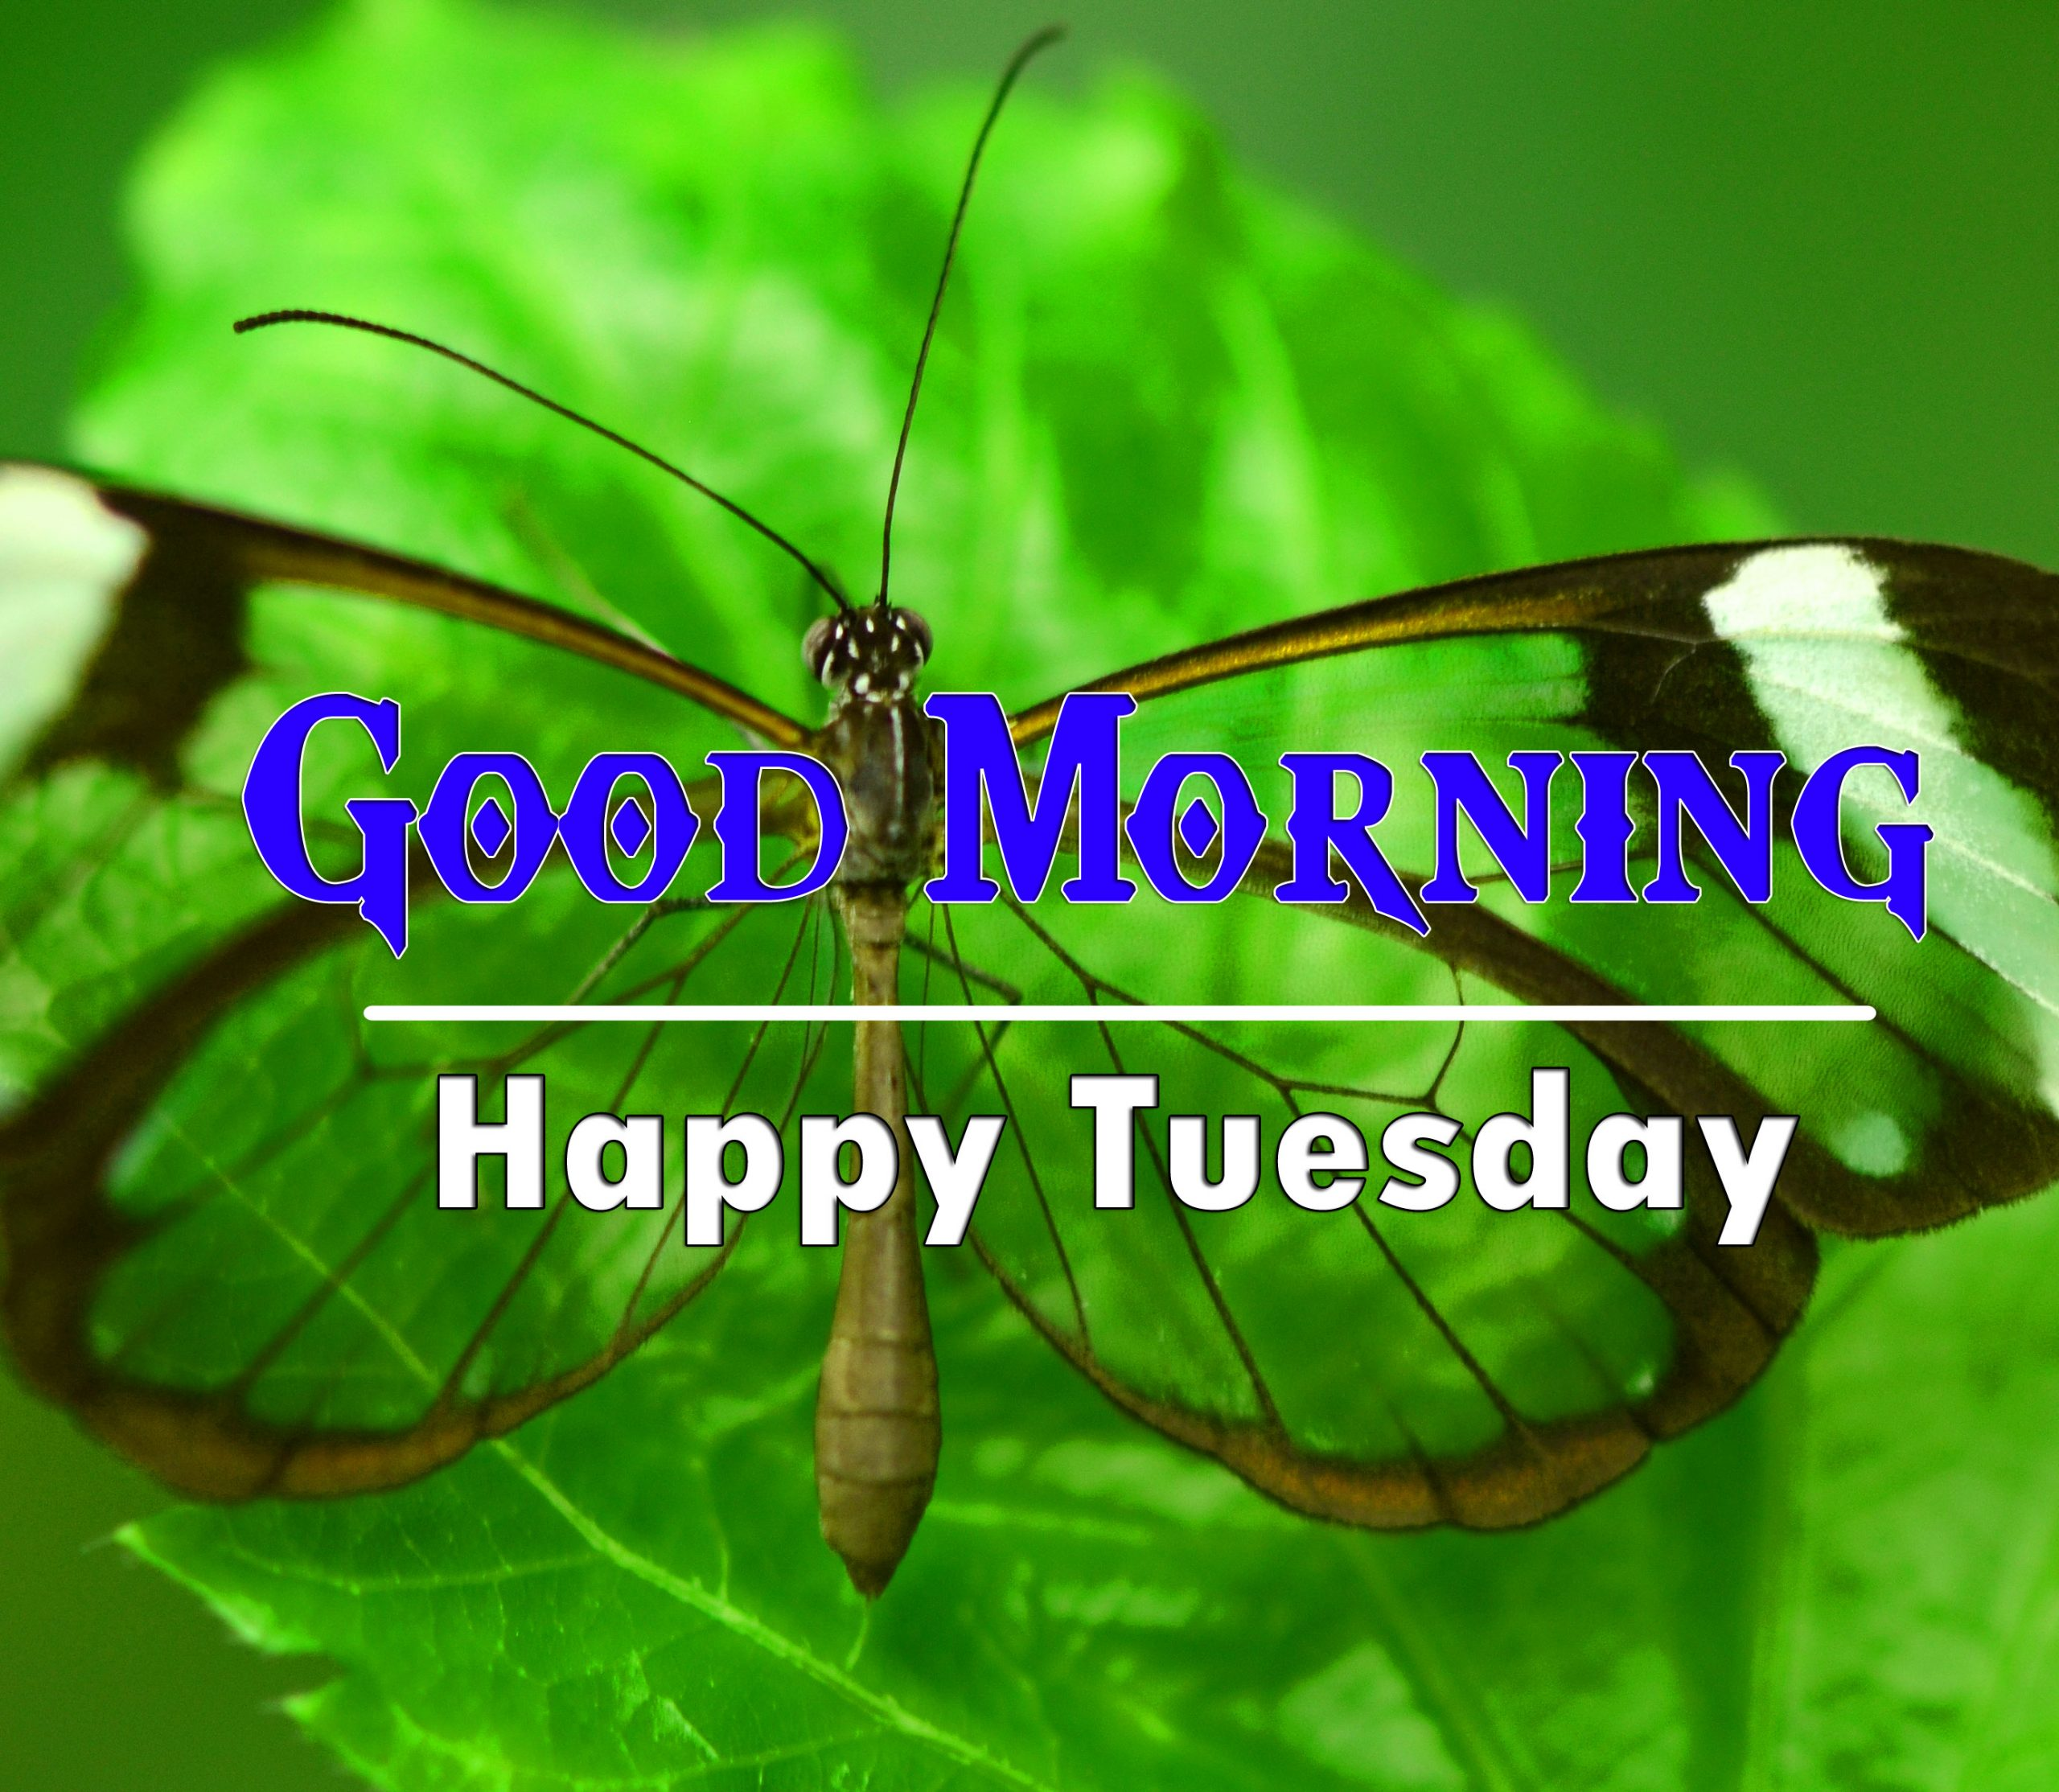 HD Top Quality Tuesday Good morning Images Free